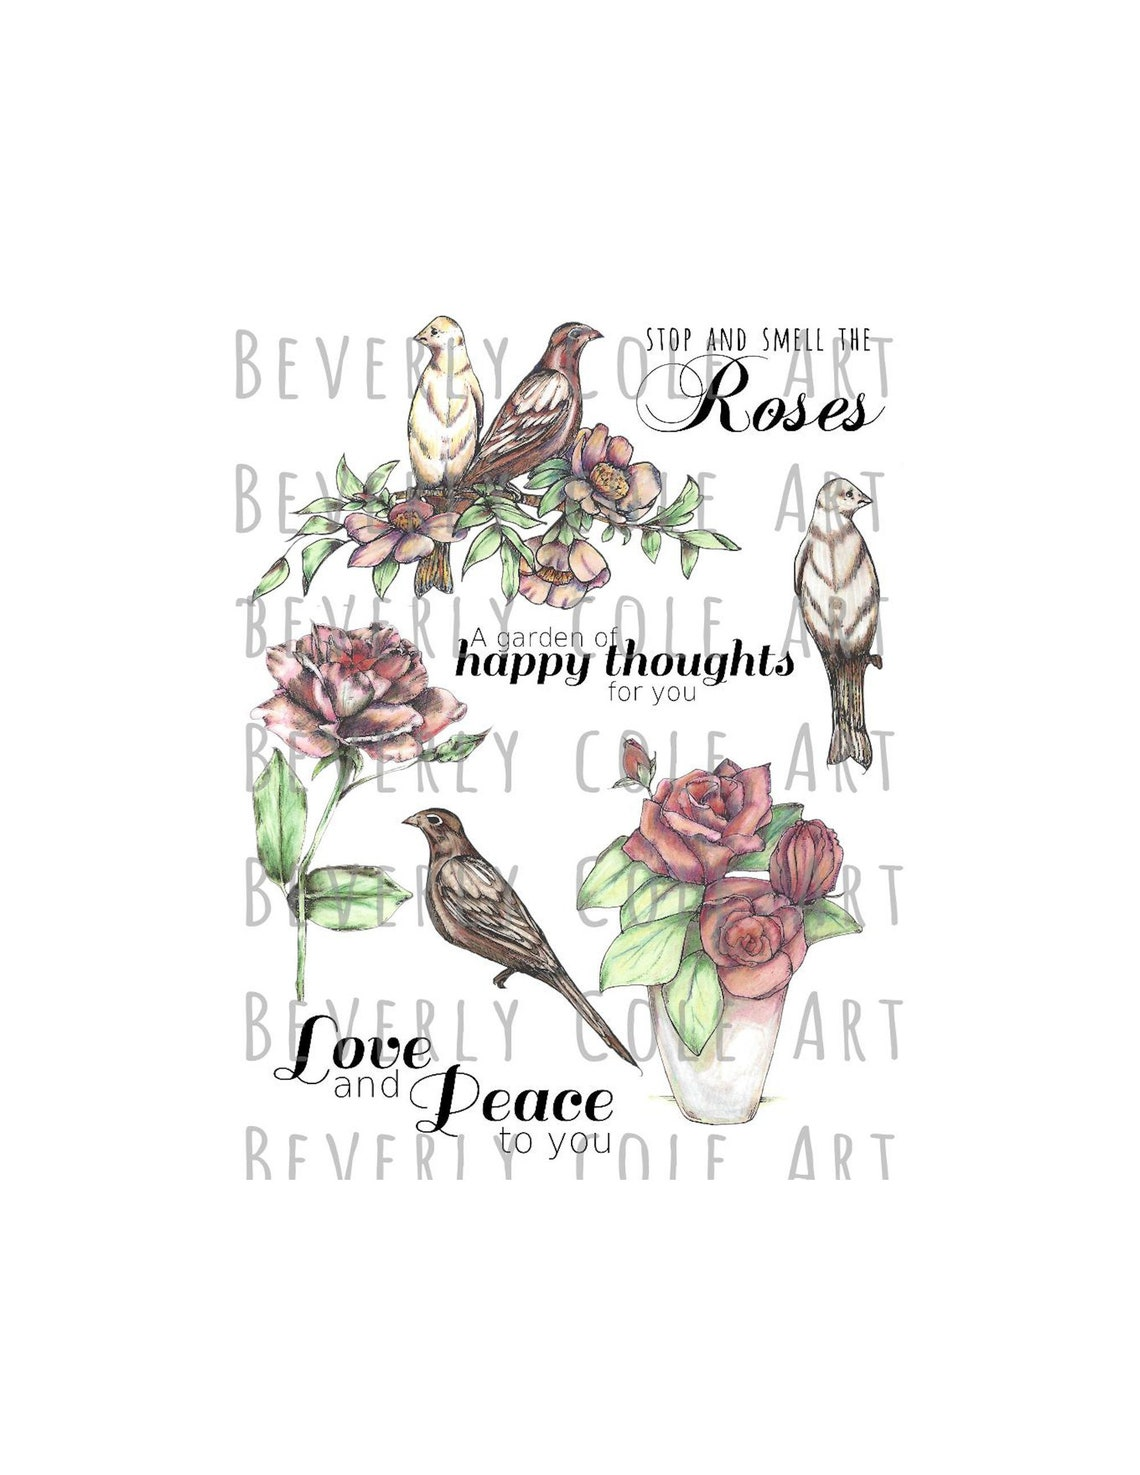 Vintage Roses & Birds Digital Stamp Set. For cards journals image 0